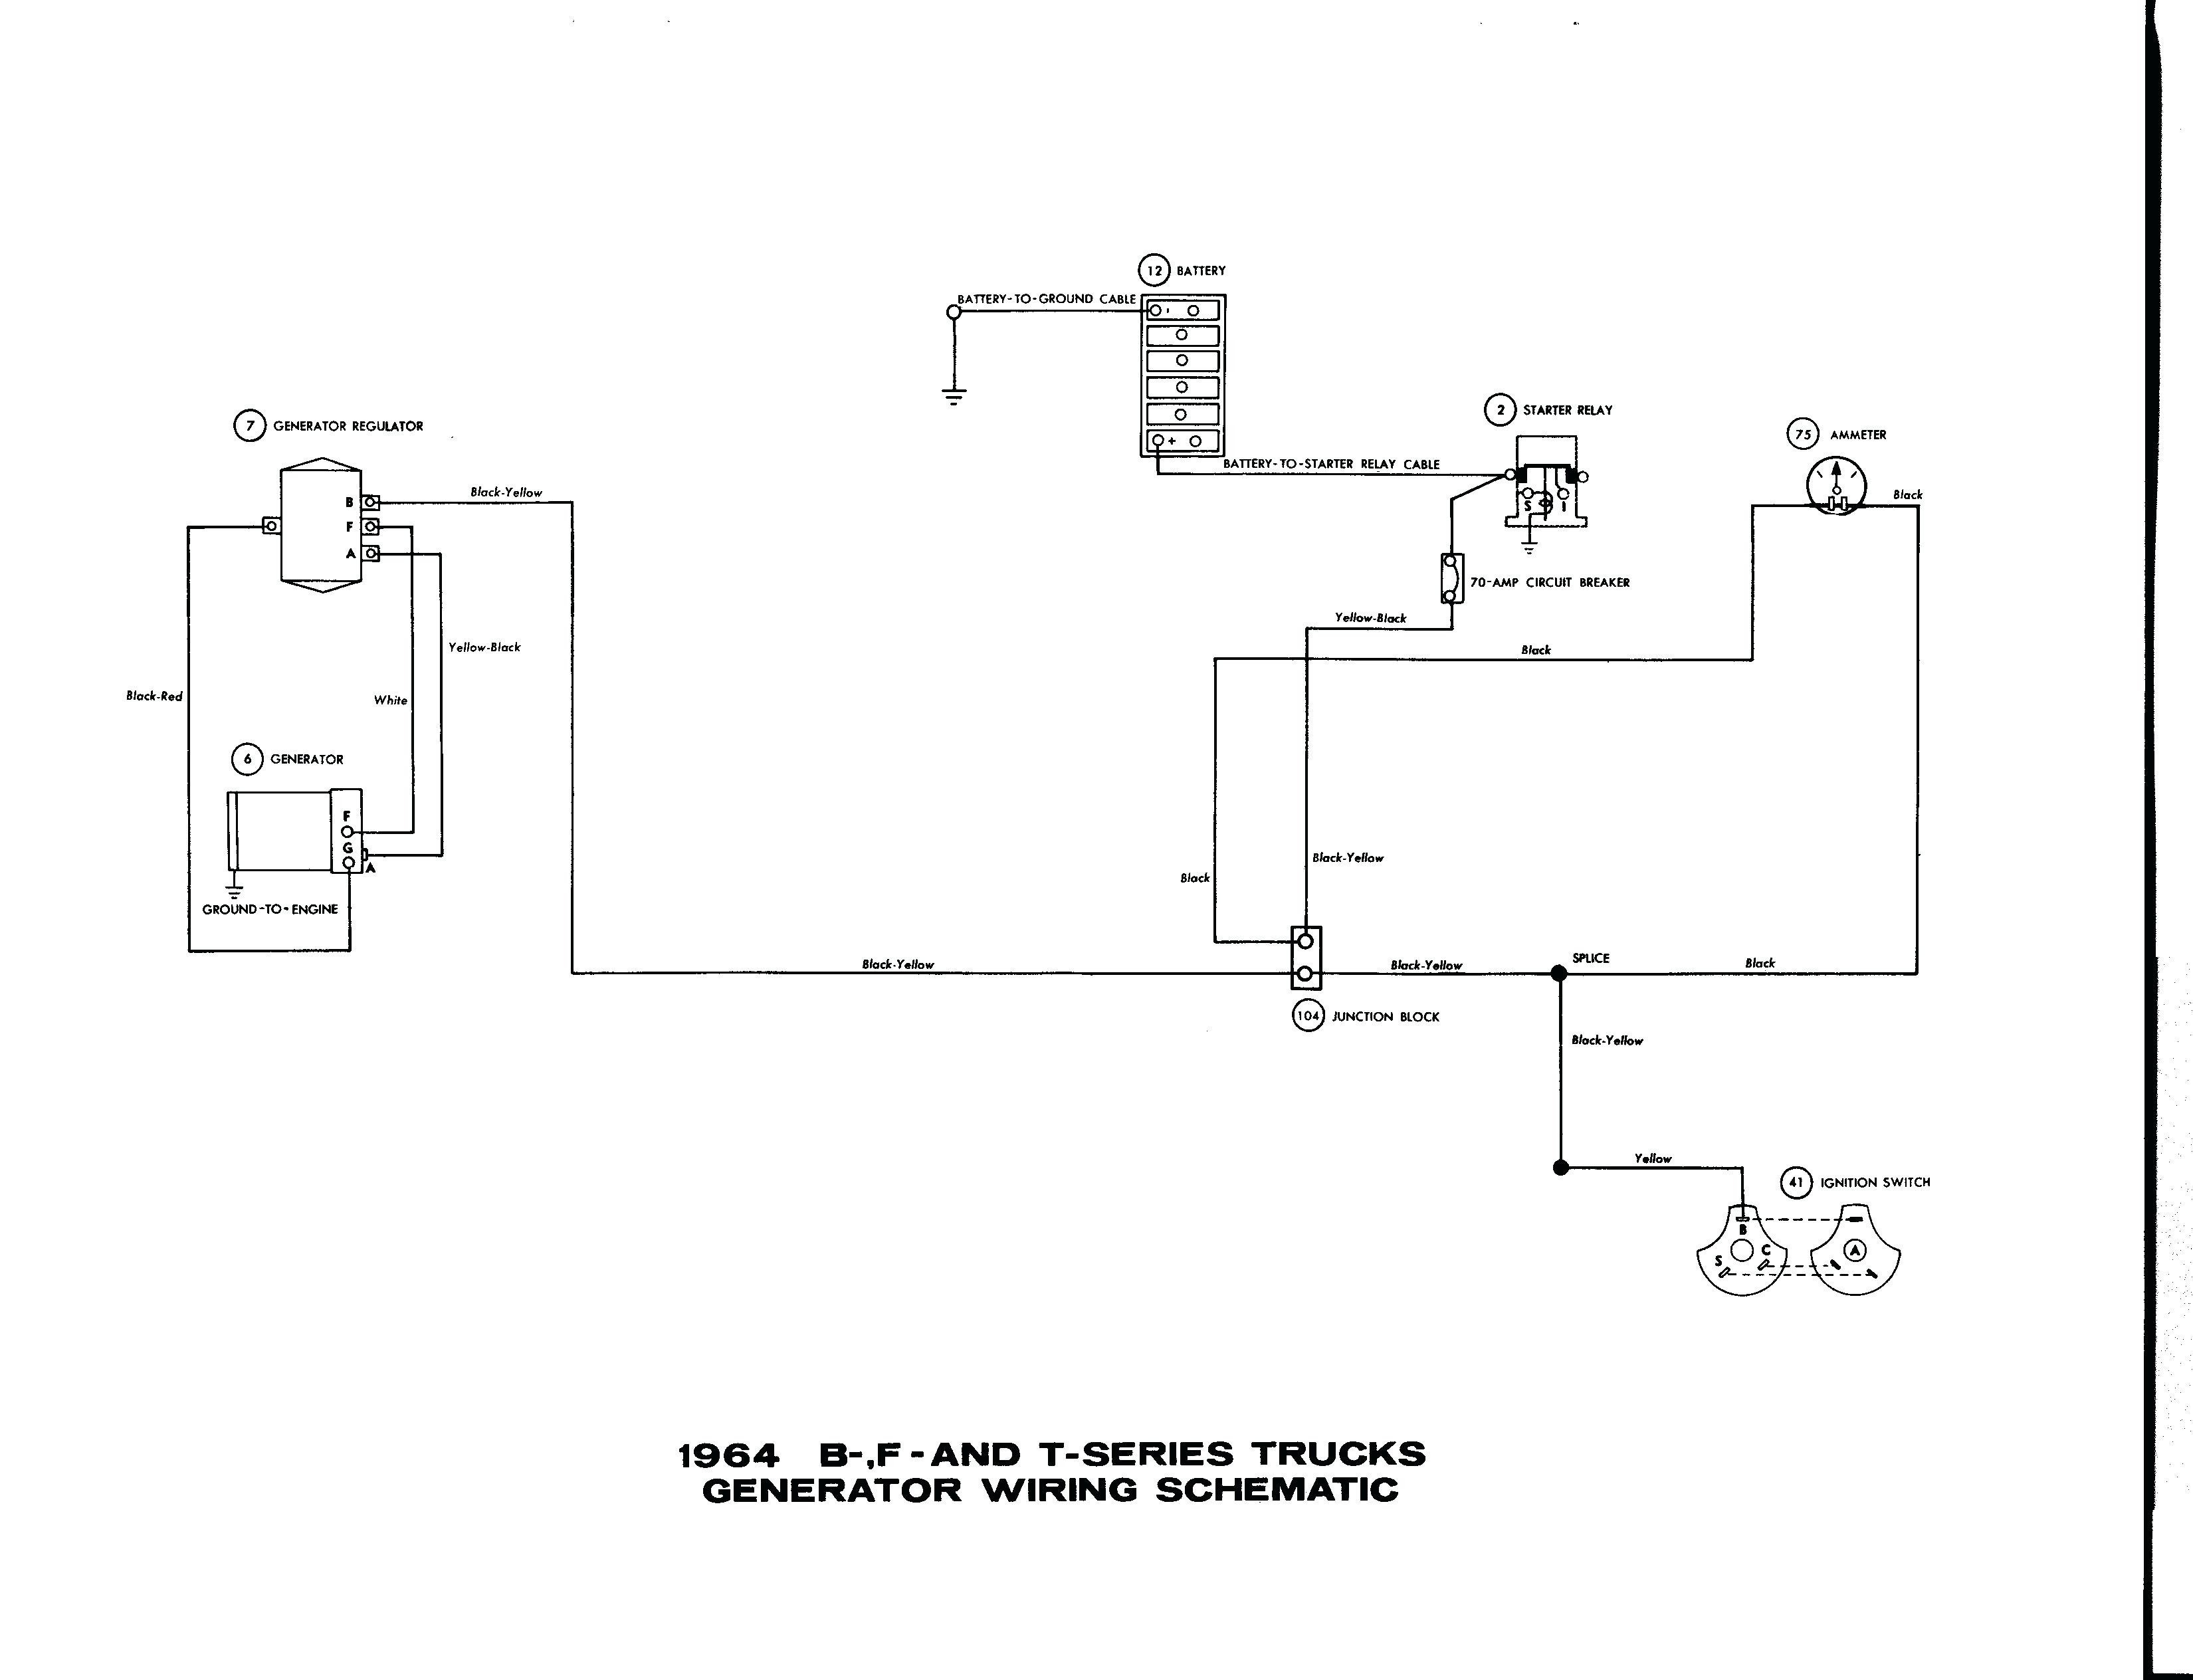 Arco Roto Phase Wiring Diagram Http Wwwarcoelectriccom Product